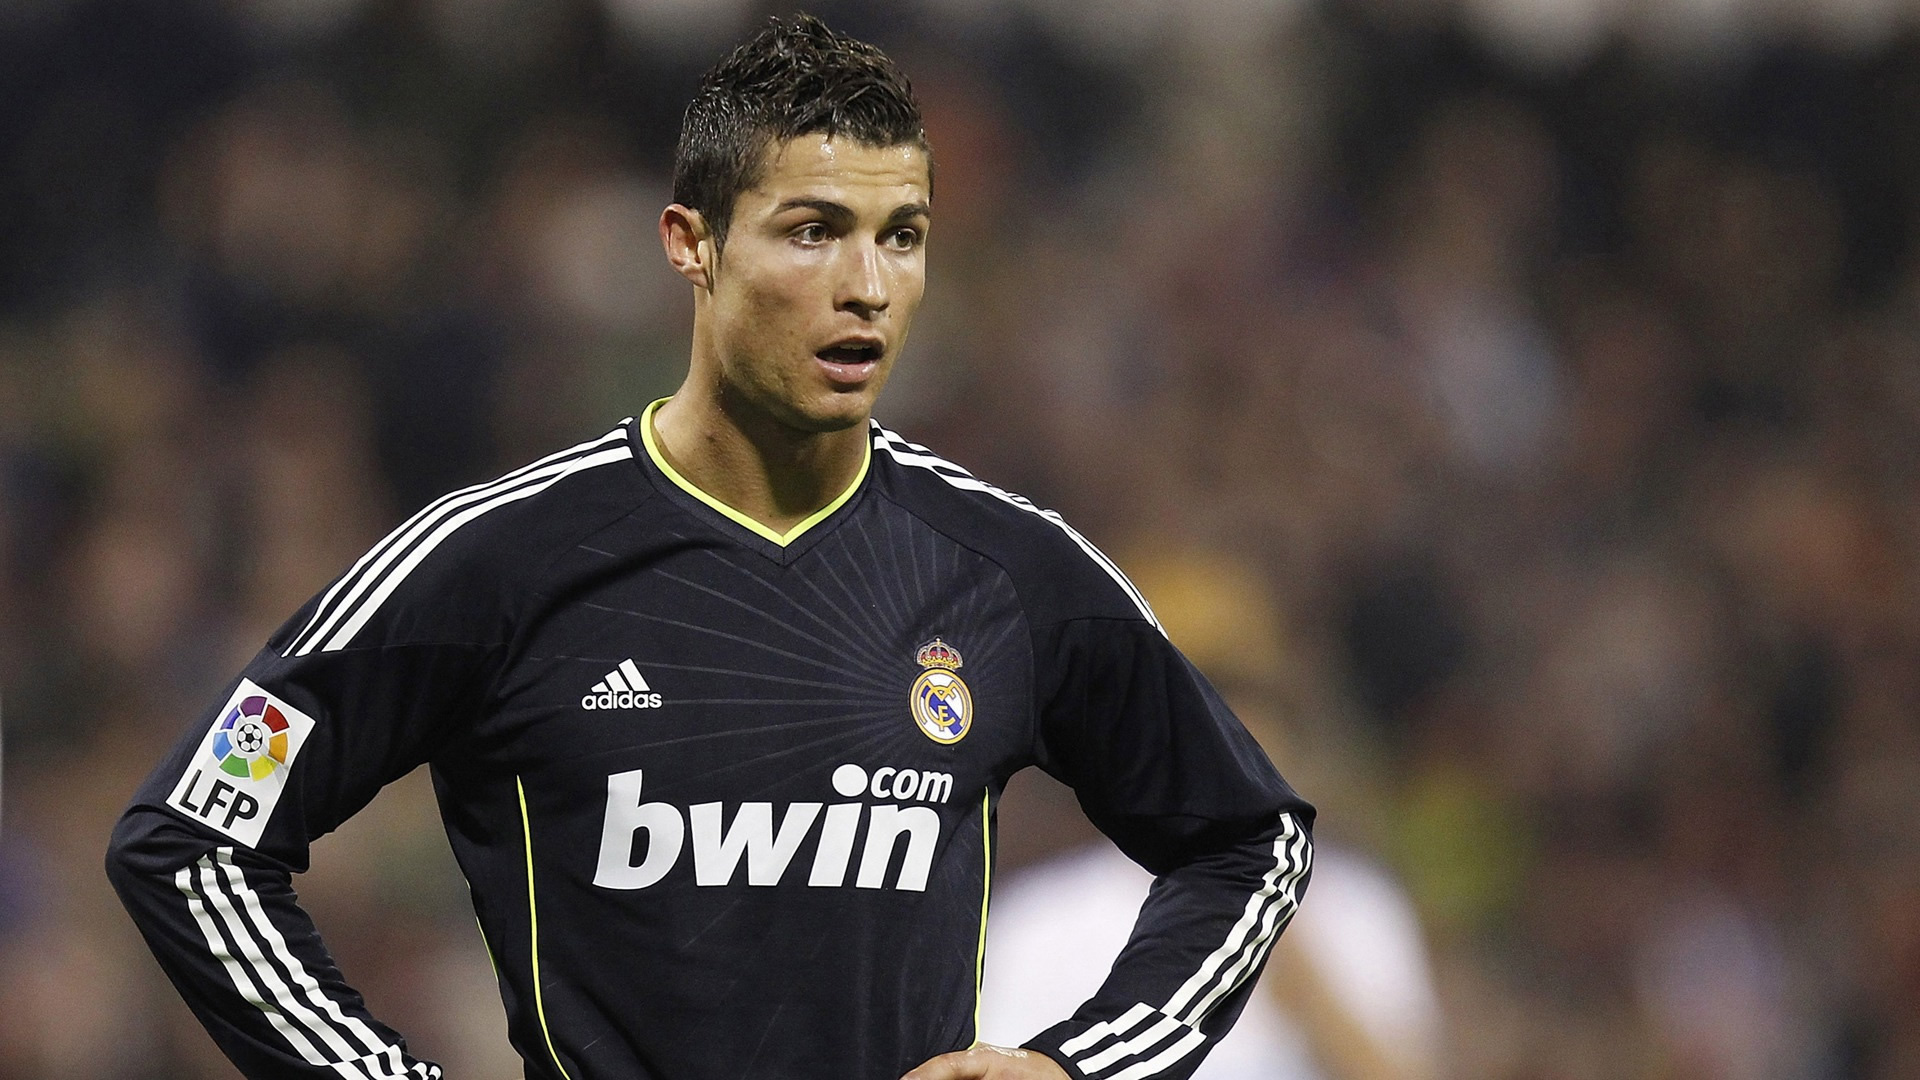 Ronaldo real madrid black shirt